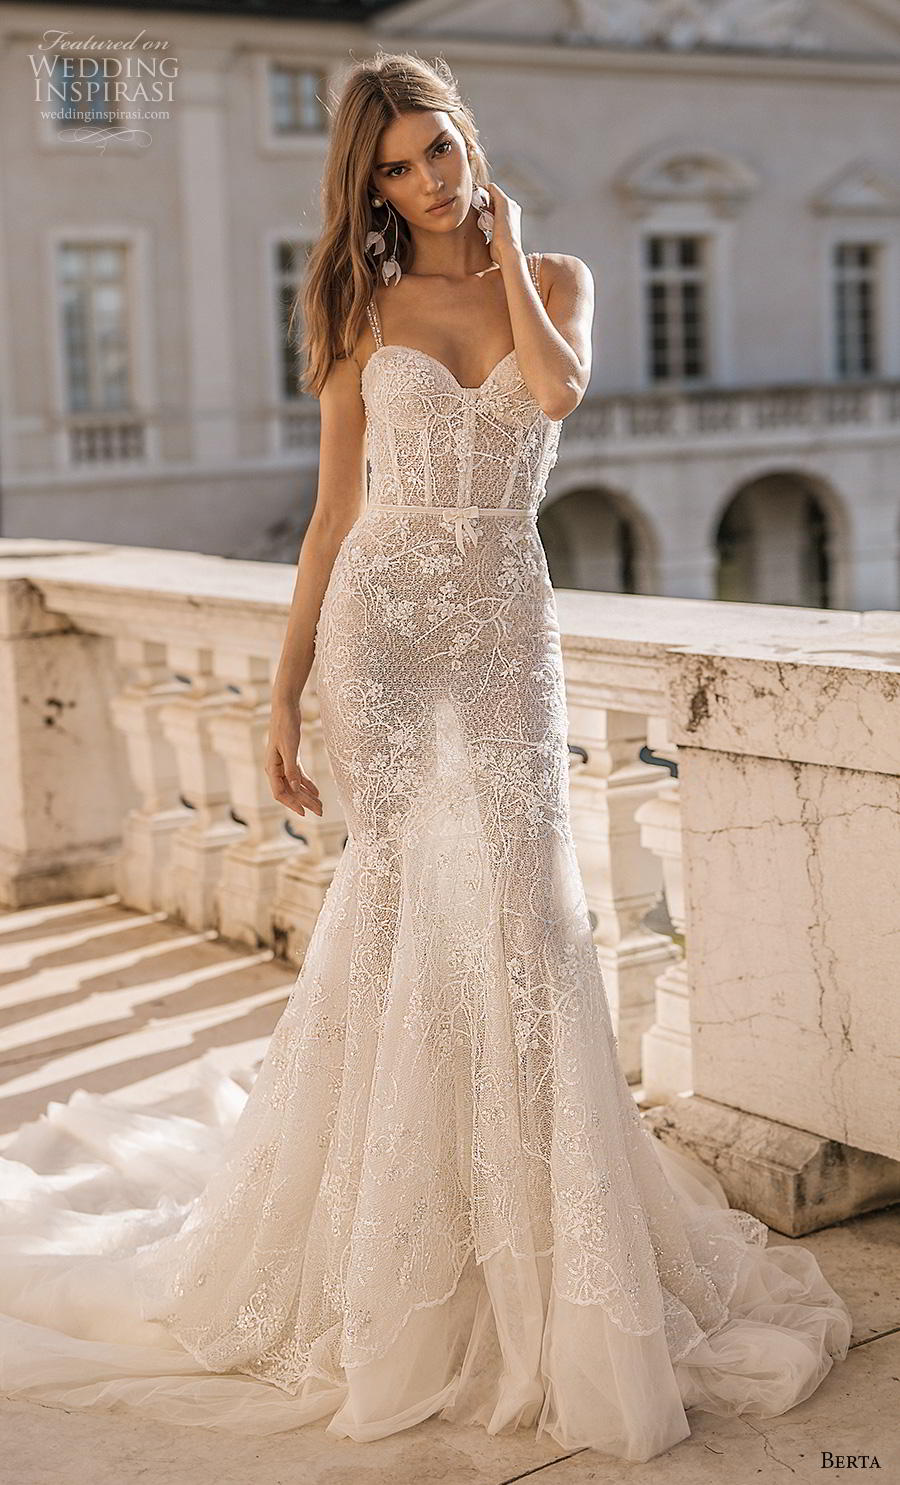 berta 2019 privee bridal thin strap sweetheart neckline heavily embellished bodice bustier sexy romantic mermaid wedding dress low open back backless chapel train (2) mv